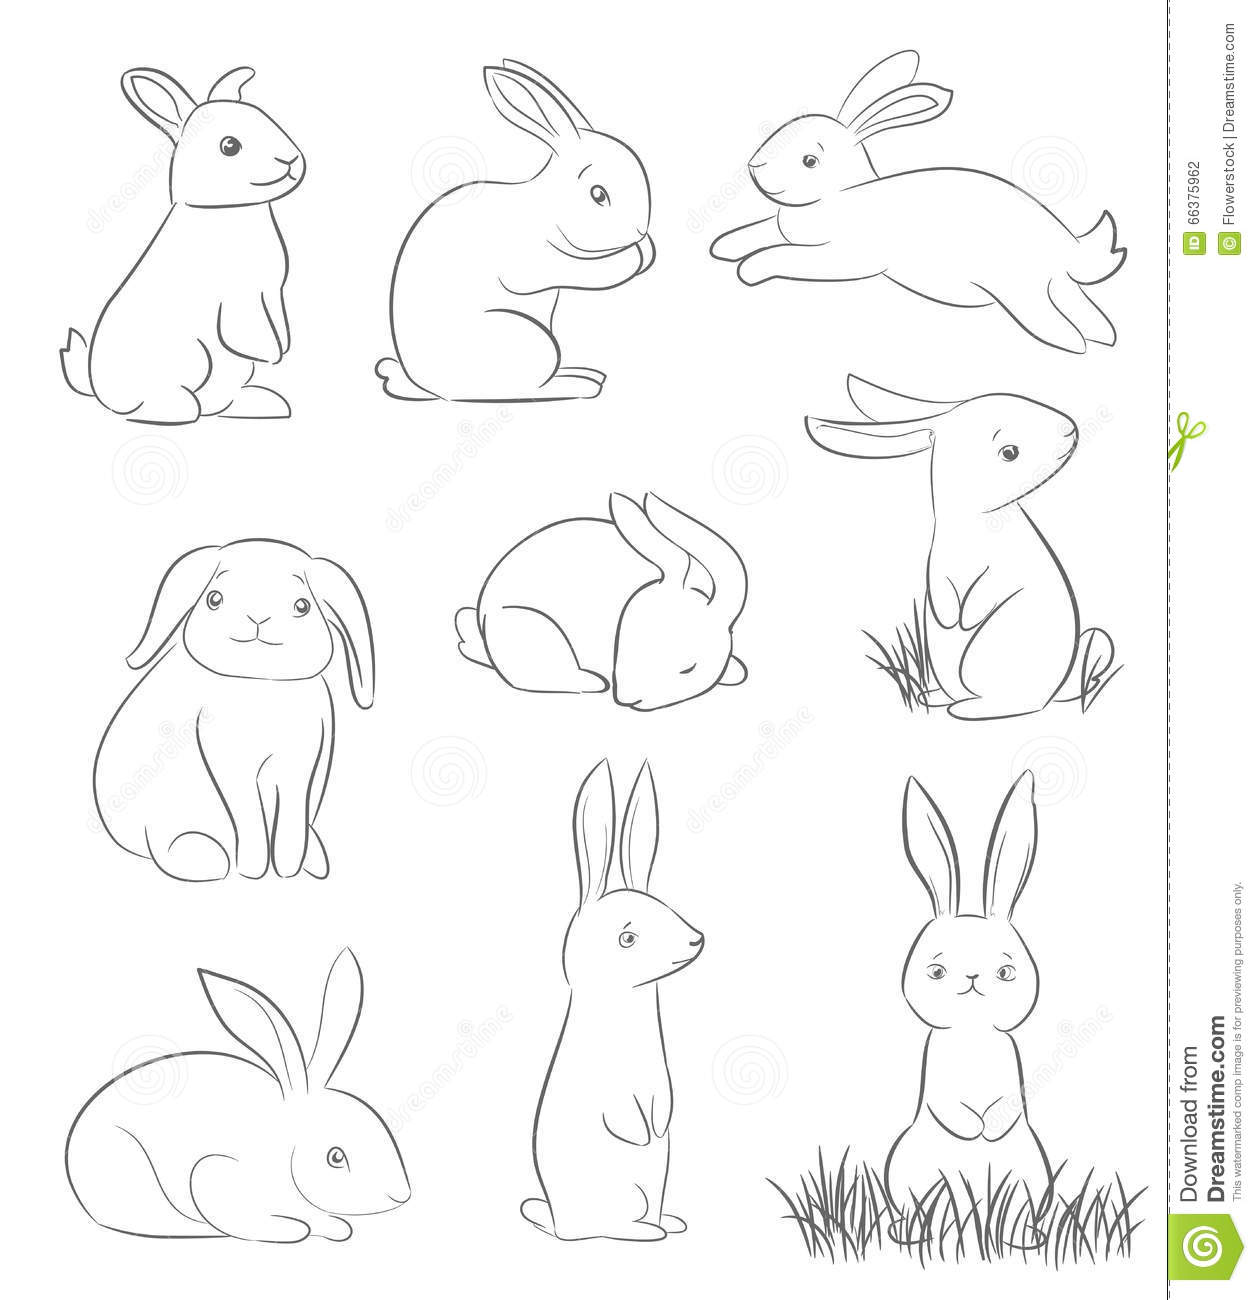 Line Drawing Bunny : Set of cute cartoon rabbits stock vector illustration